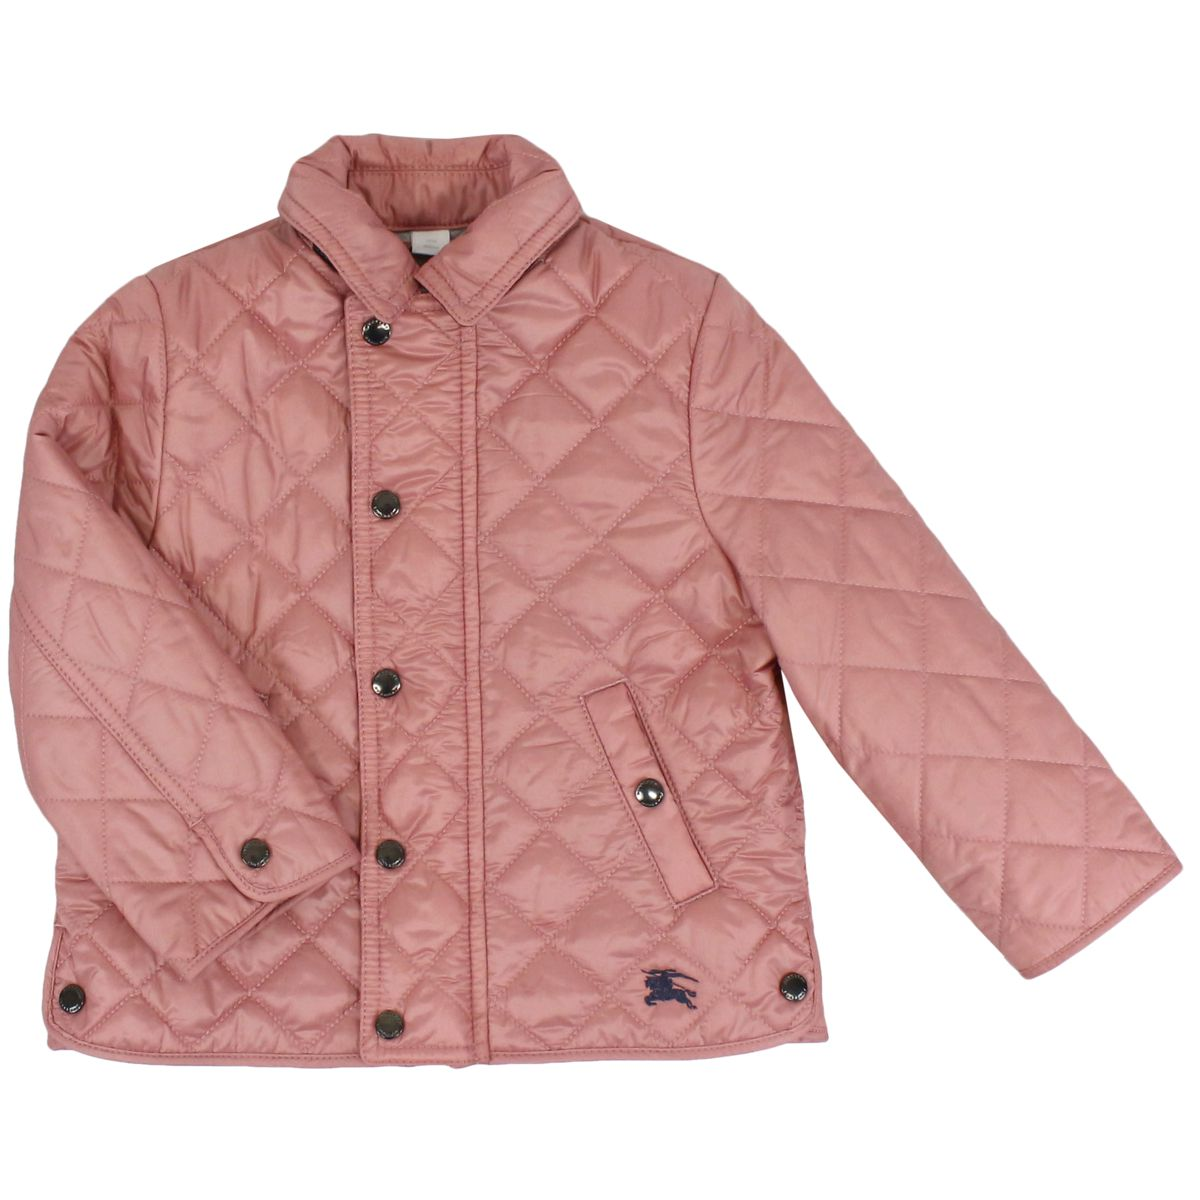 Quilted fabric quilted jacket Rose Burberry